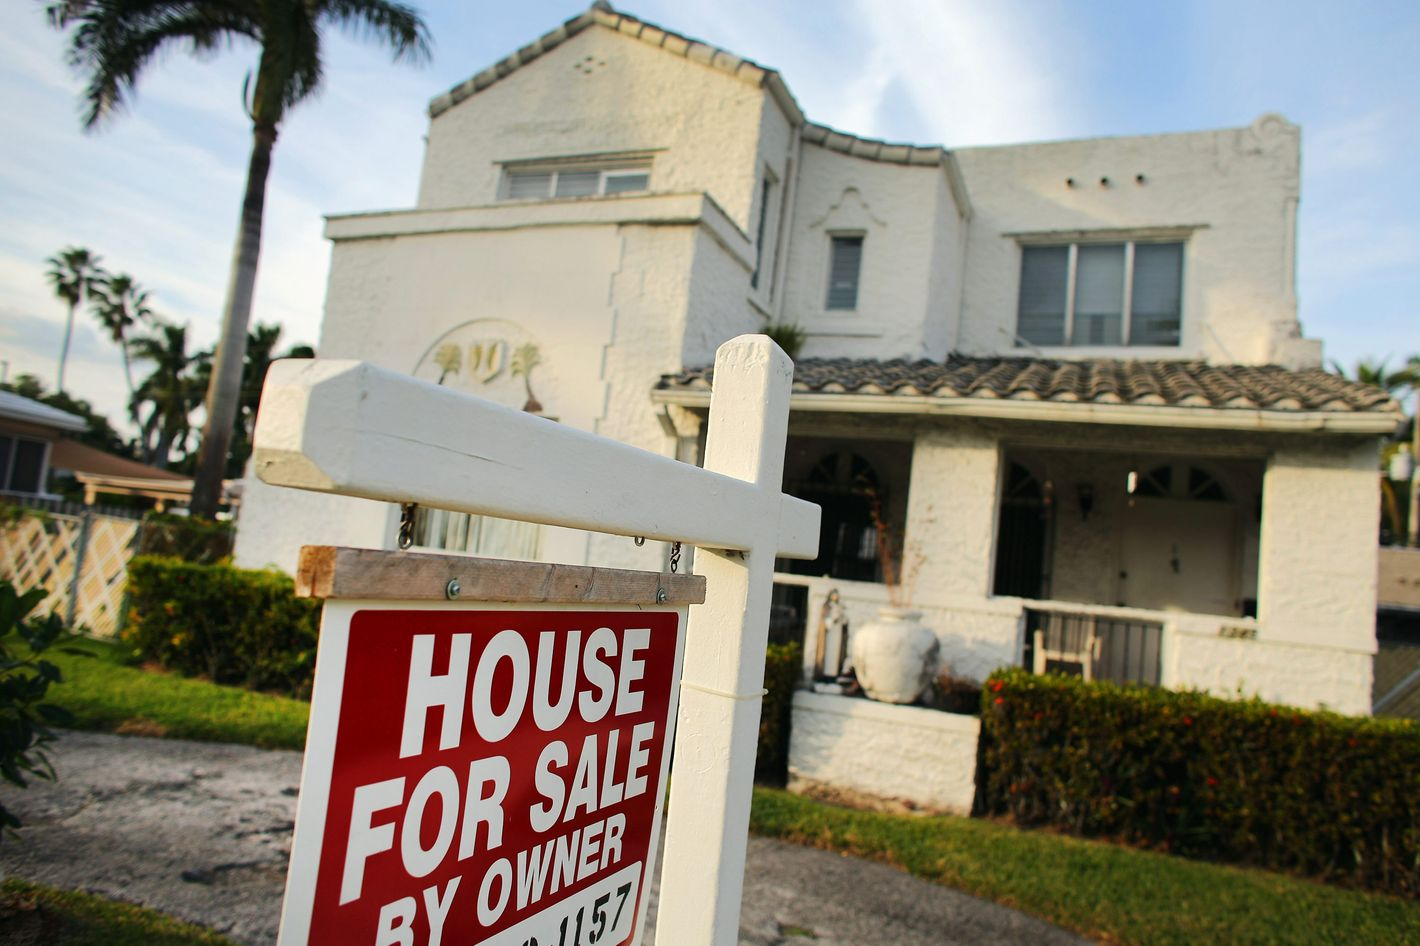 A 'For Sale' sign is posted in front of a house on November 28, 2012 in Hollywood, Florida.